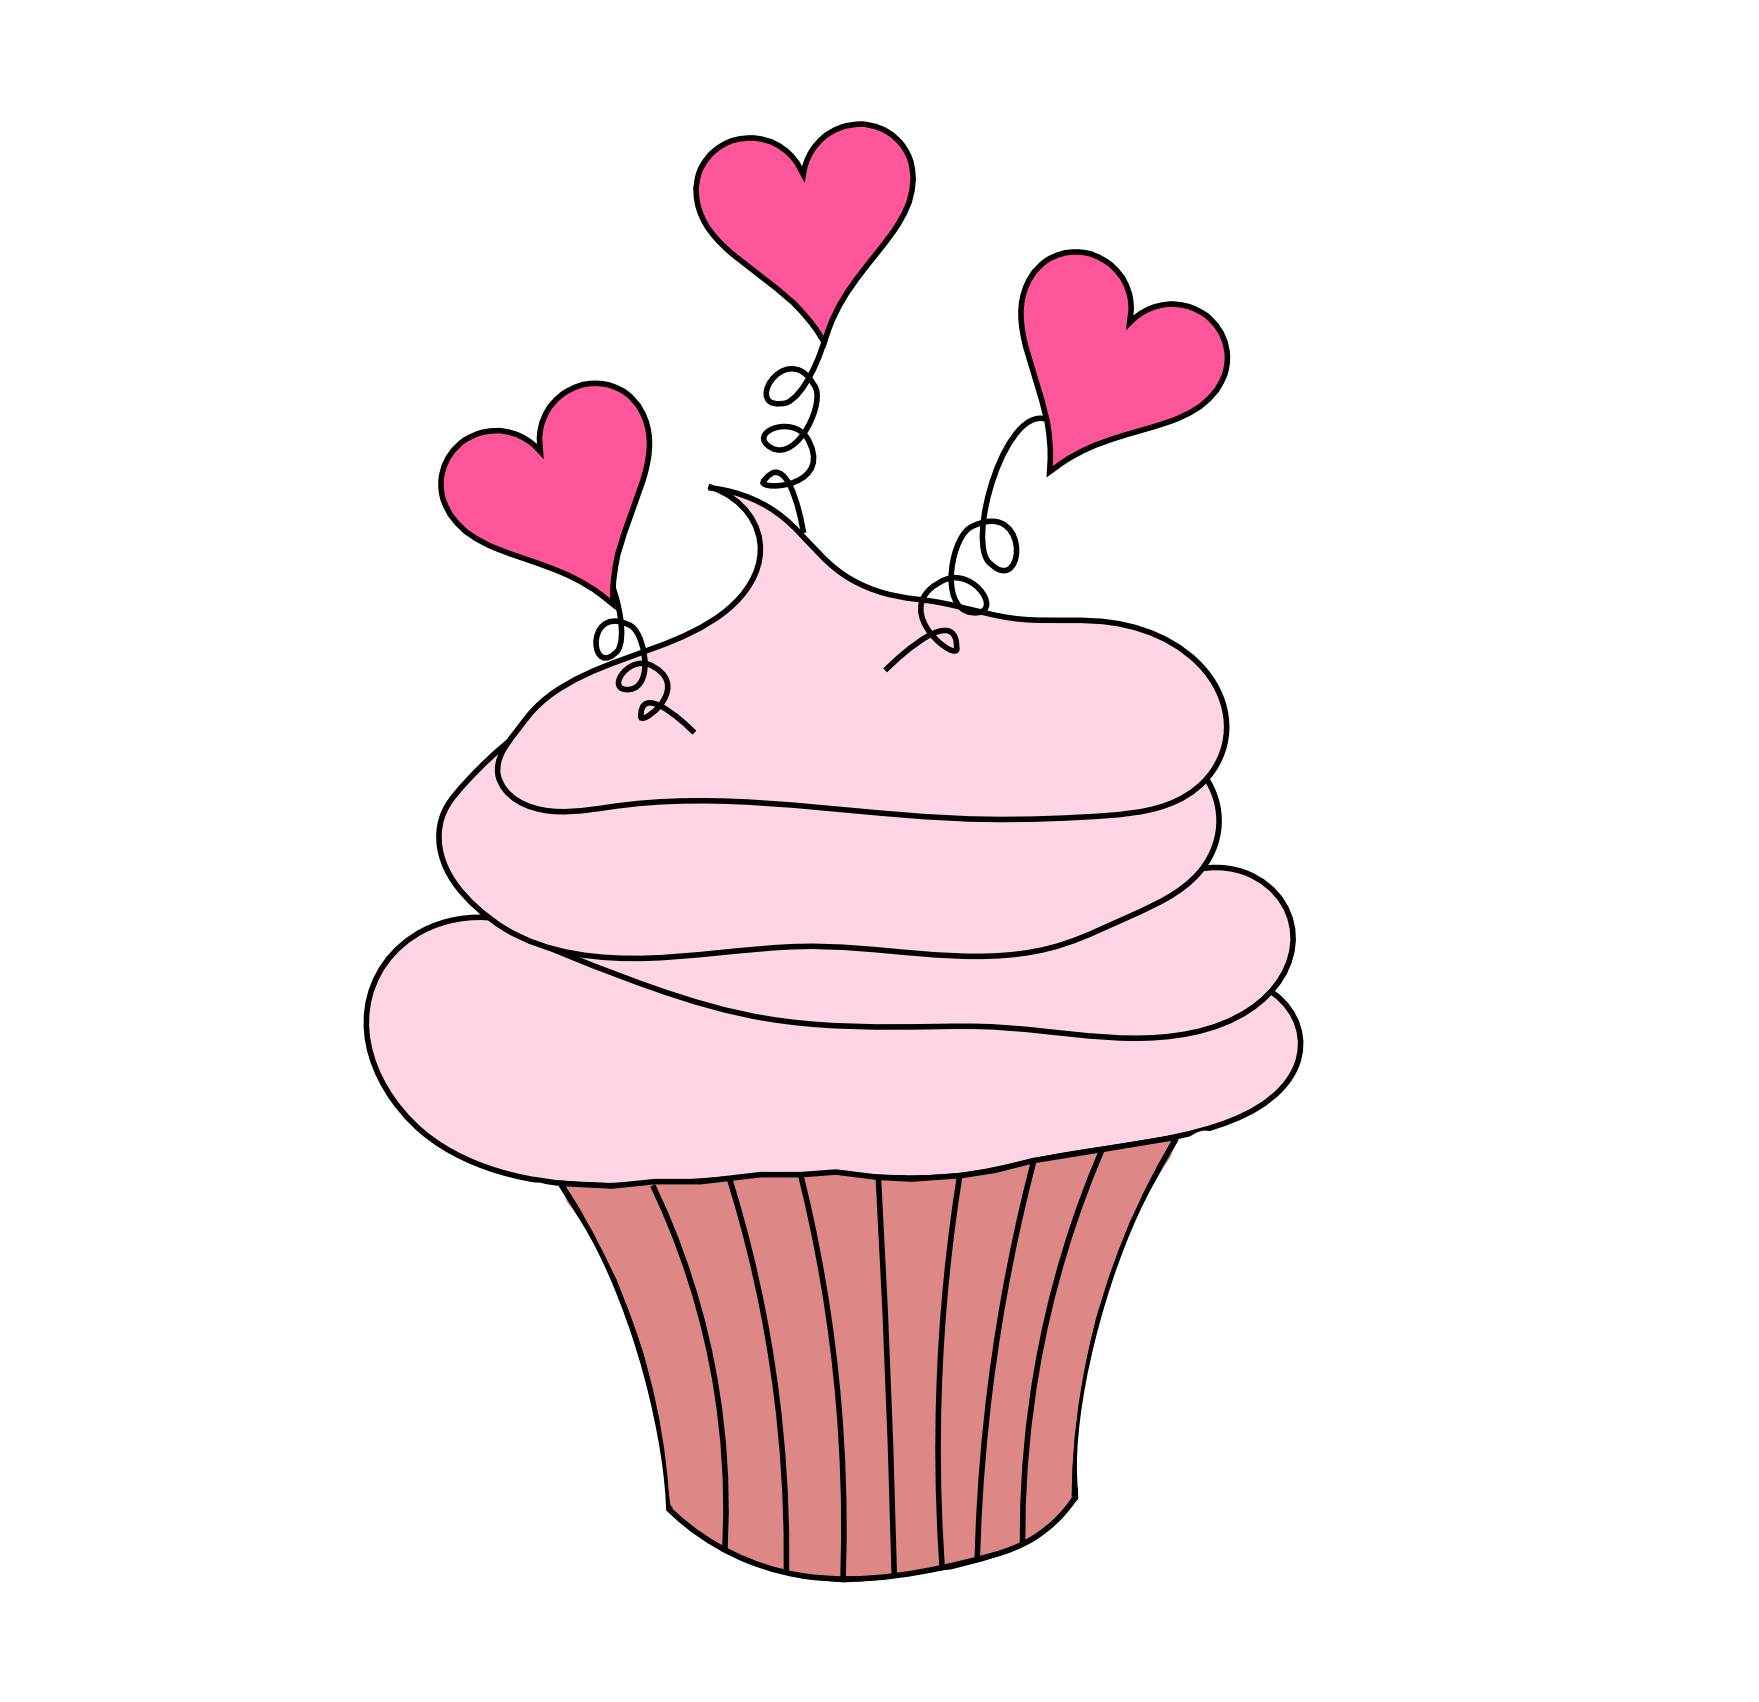 Clipart cupcake heart. Crafts to make and